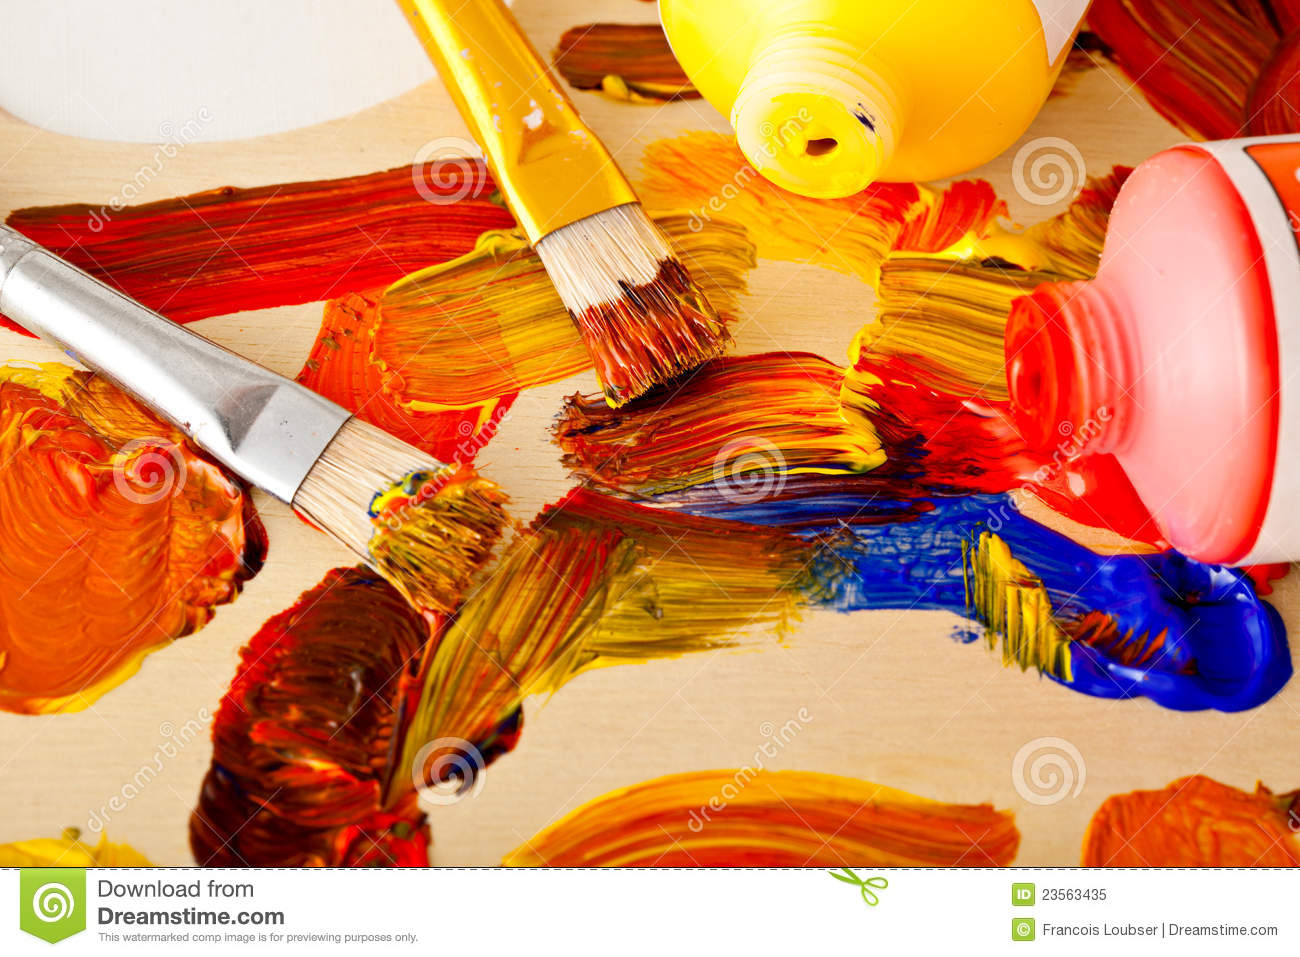 Real Paint Brushes And Palette Images & Pictures - Becuo